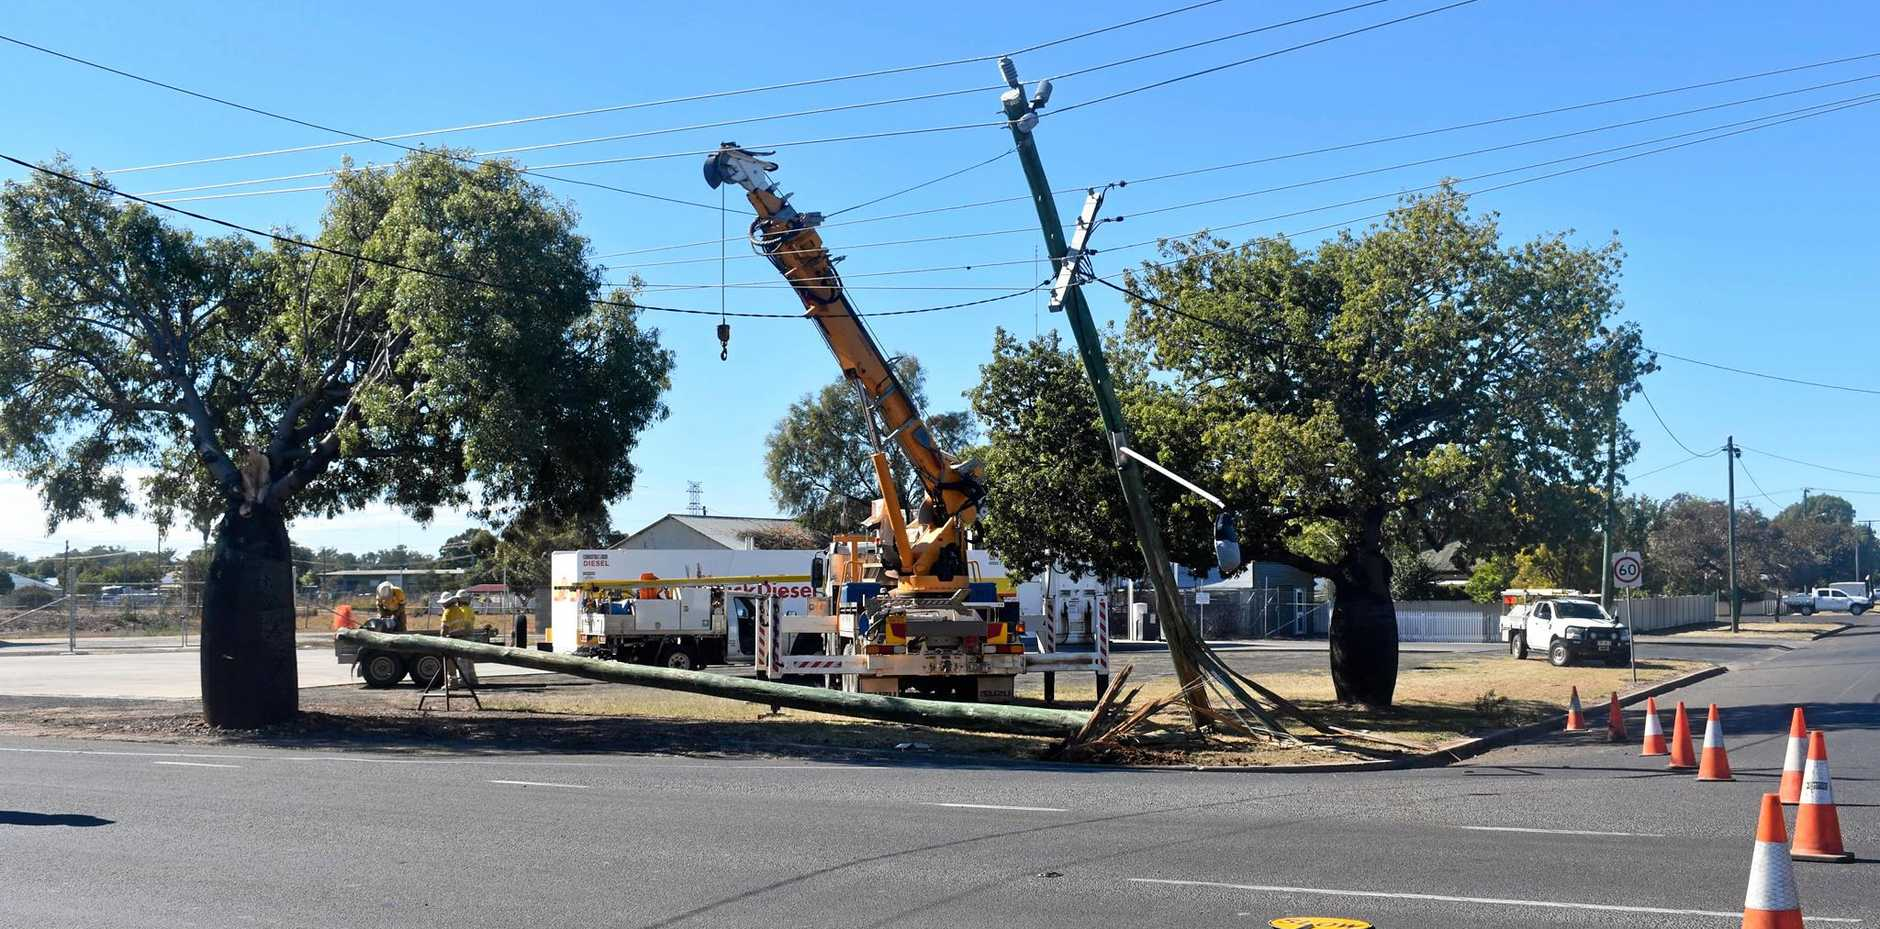 A truck carrying a wide load has collided with a power pole on the corner of Chrystal St and Warrego Hwy, causing power outages across Roma.